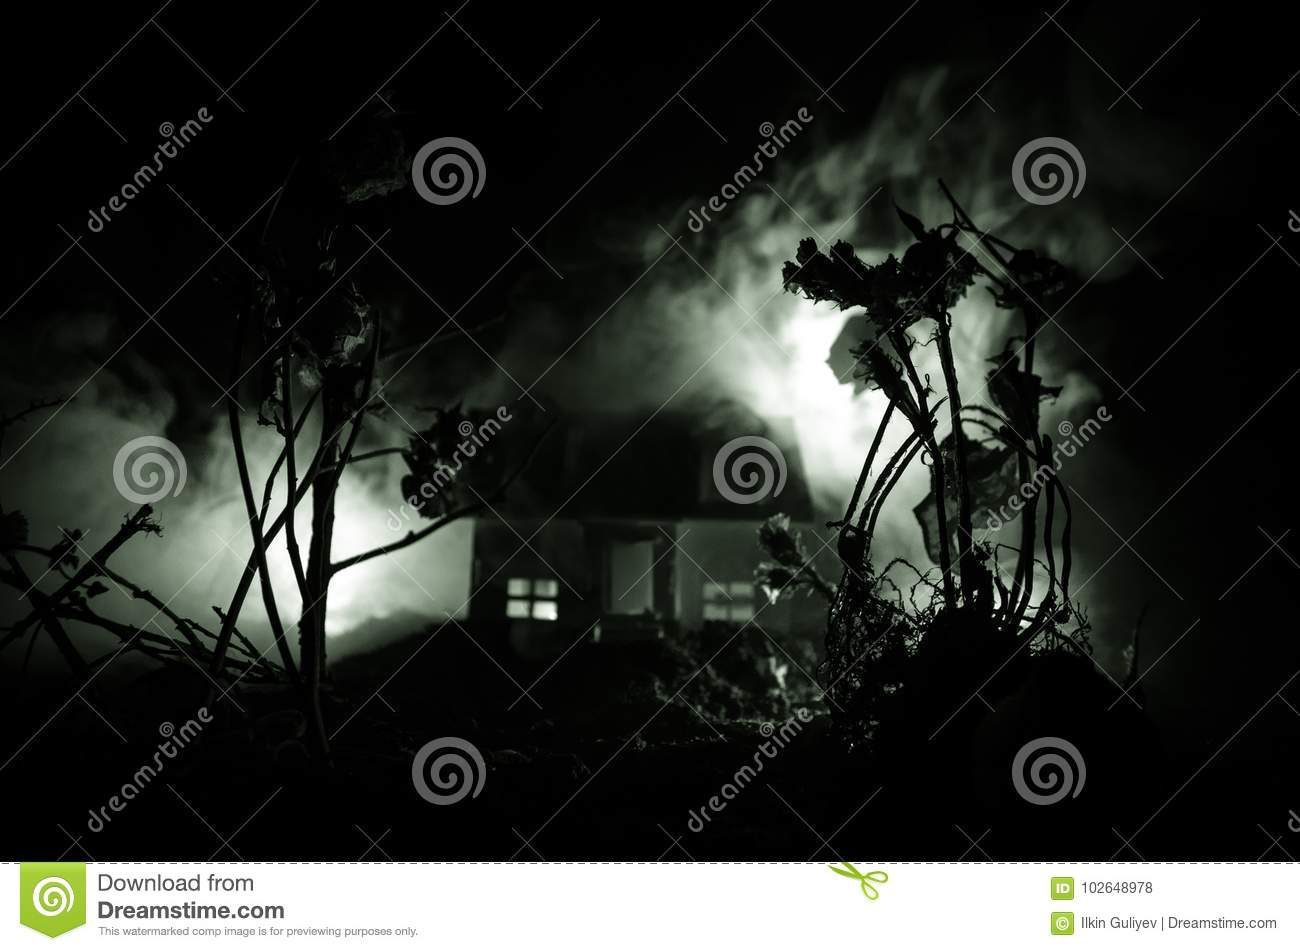 Old house with a Ghost in the moonlit night or Abandoned Haunted Horror House in fog. Old mystic villa with surreal big full moon.